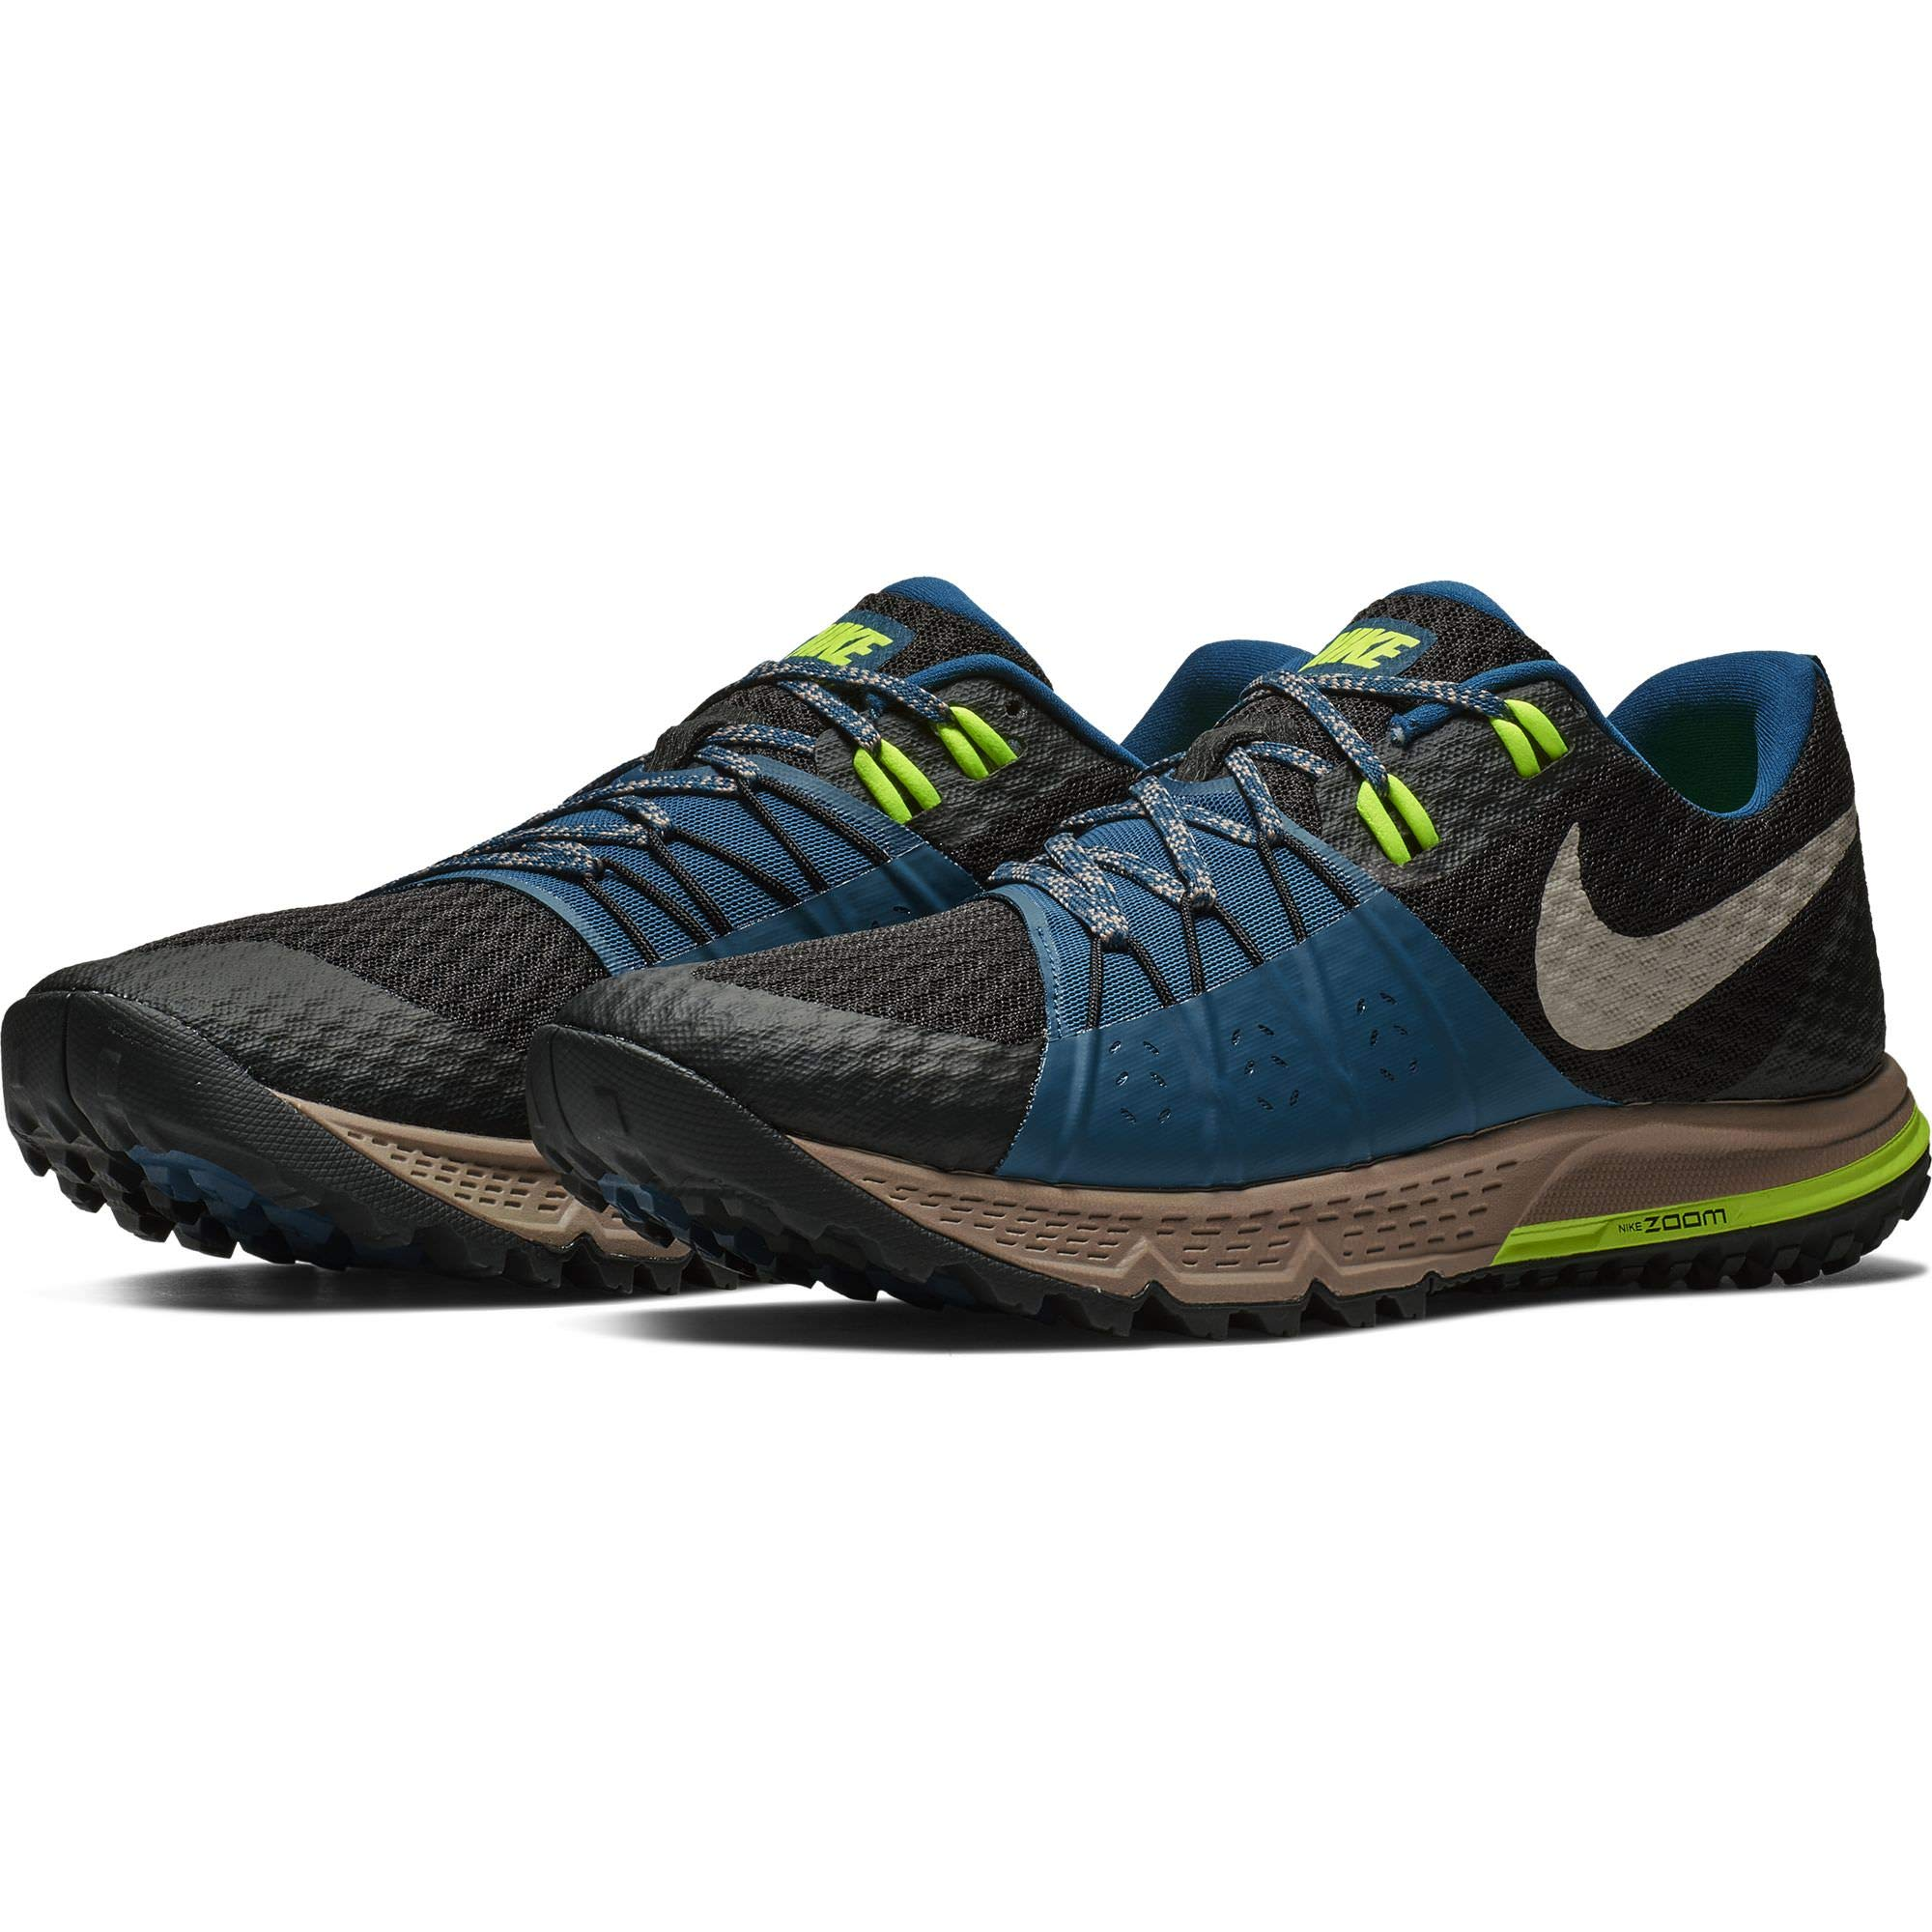 f55e1cd3497ab Galleon - NIKE Men s Air Zoom Wildhorse 4 Running Shoe Black Desert  Sand-Blue Force 11.5